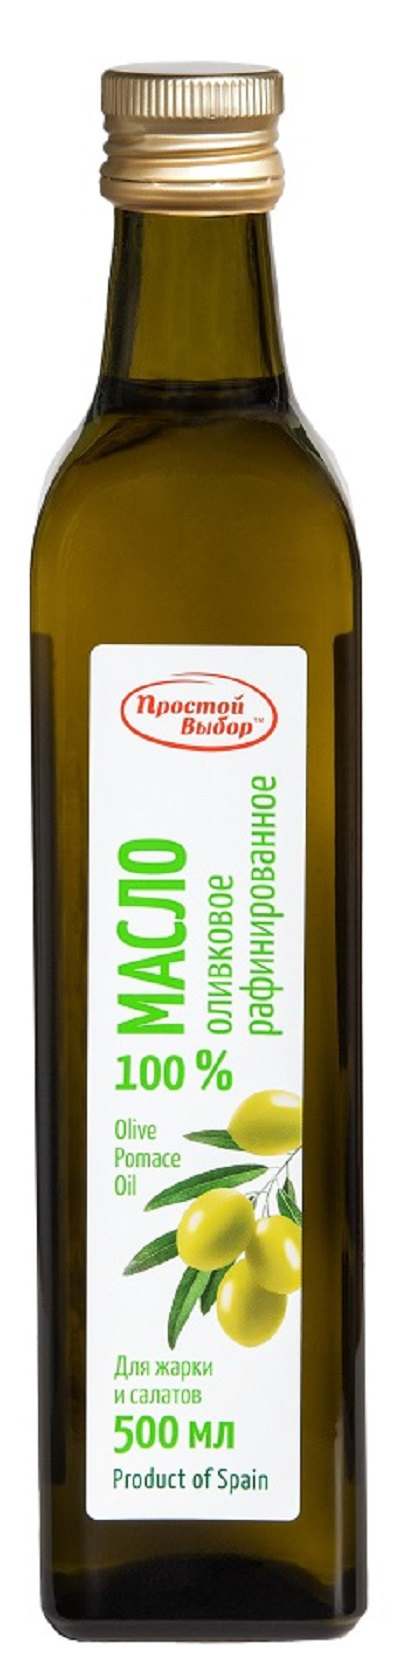 Оливковое Масло Olive-pomace Oil 500мл Image